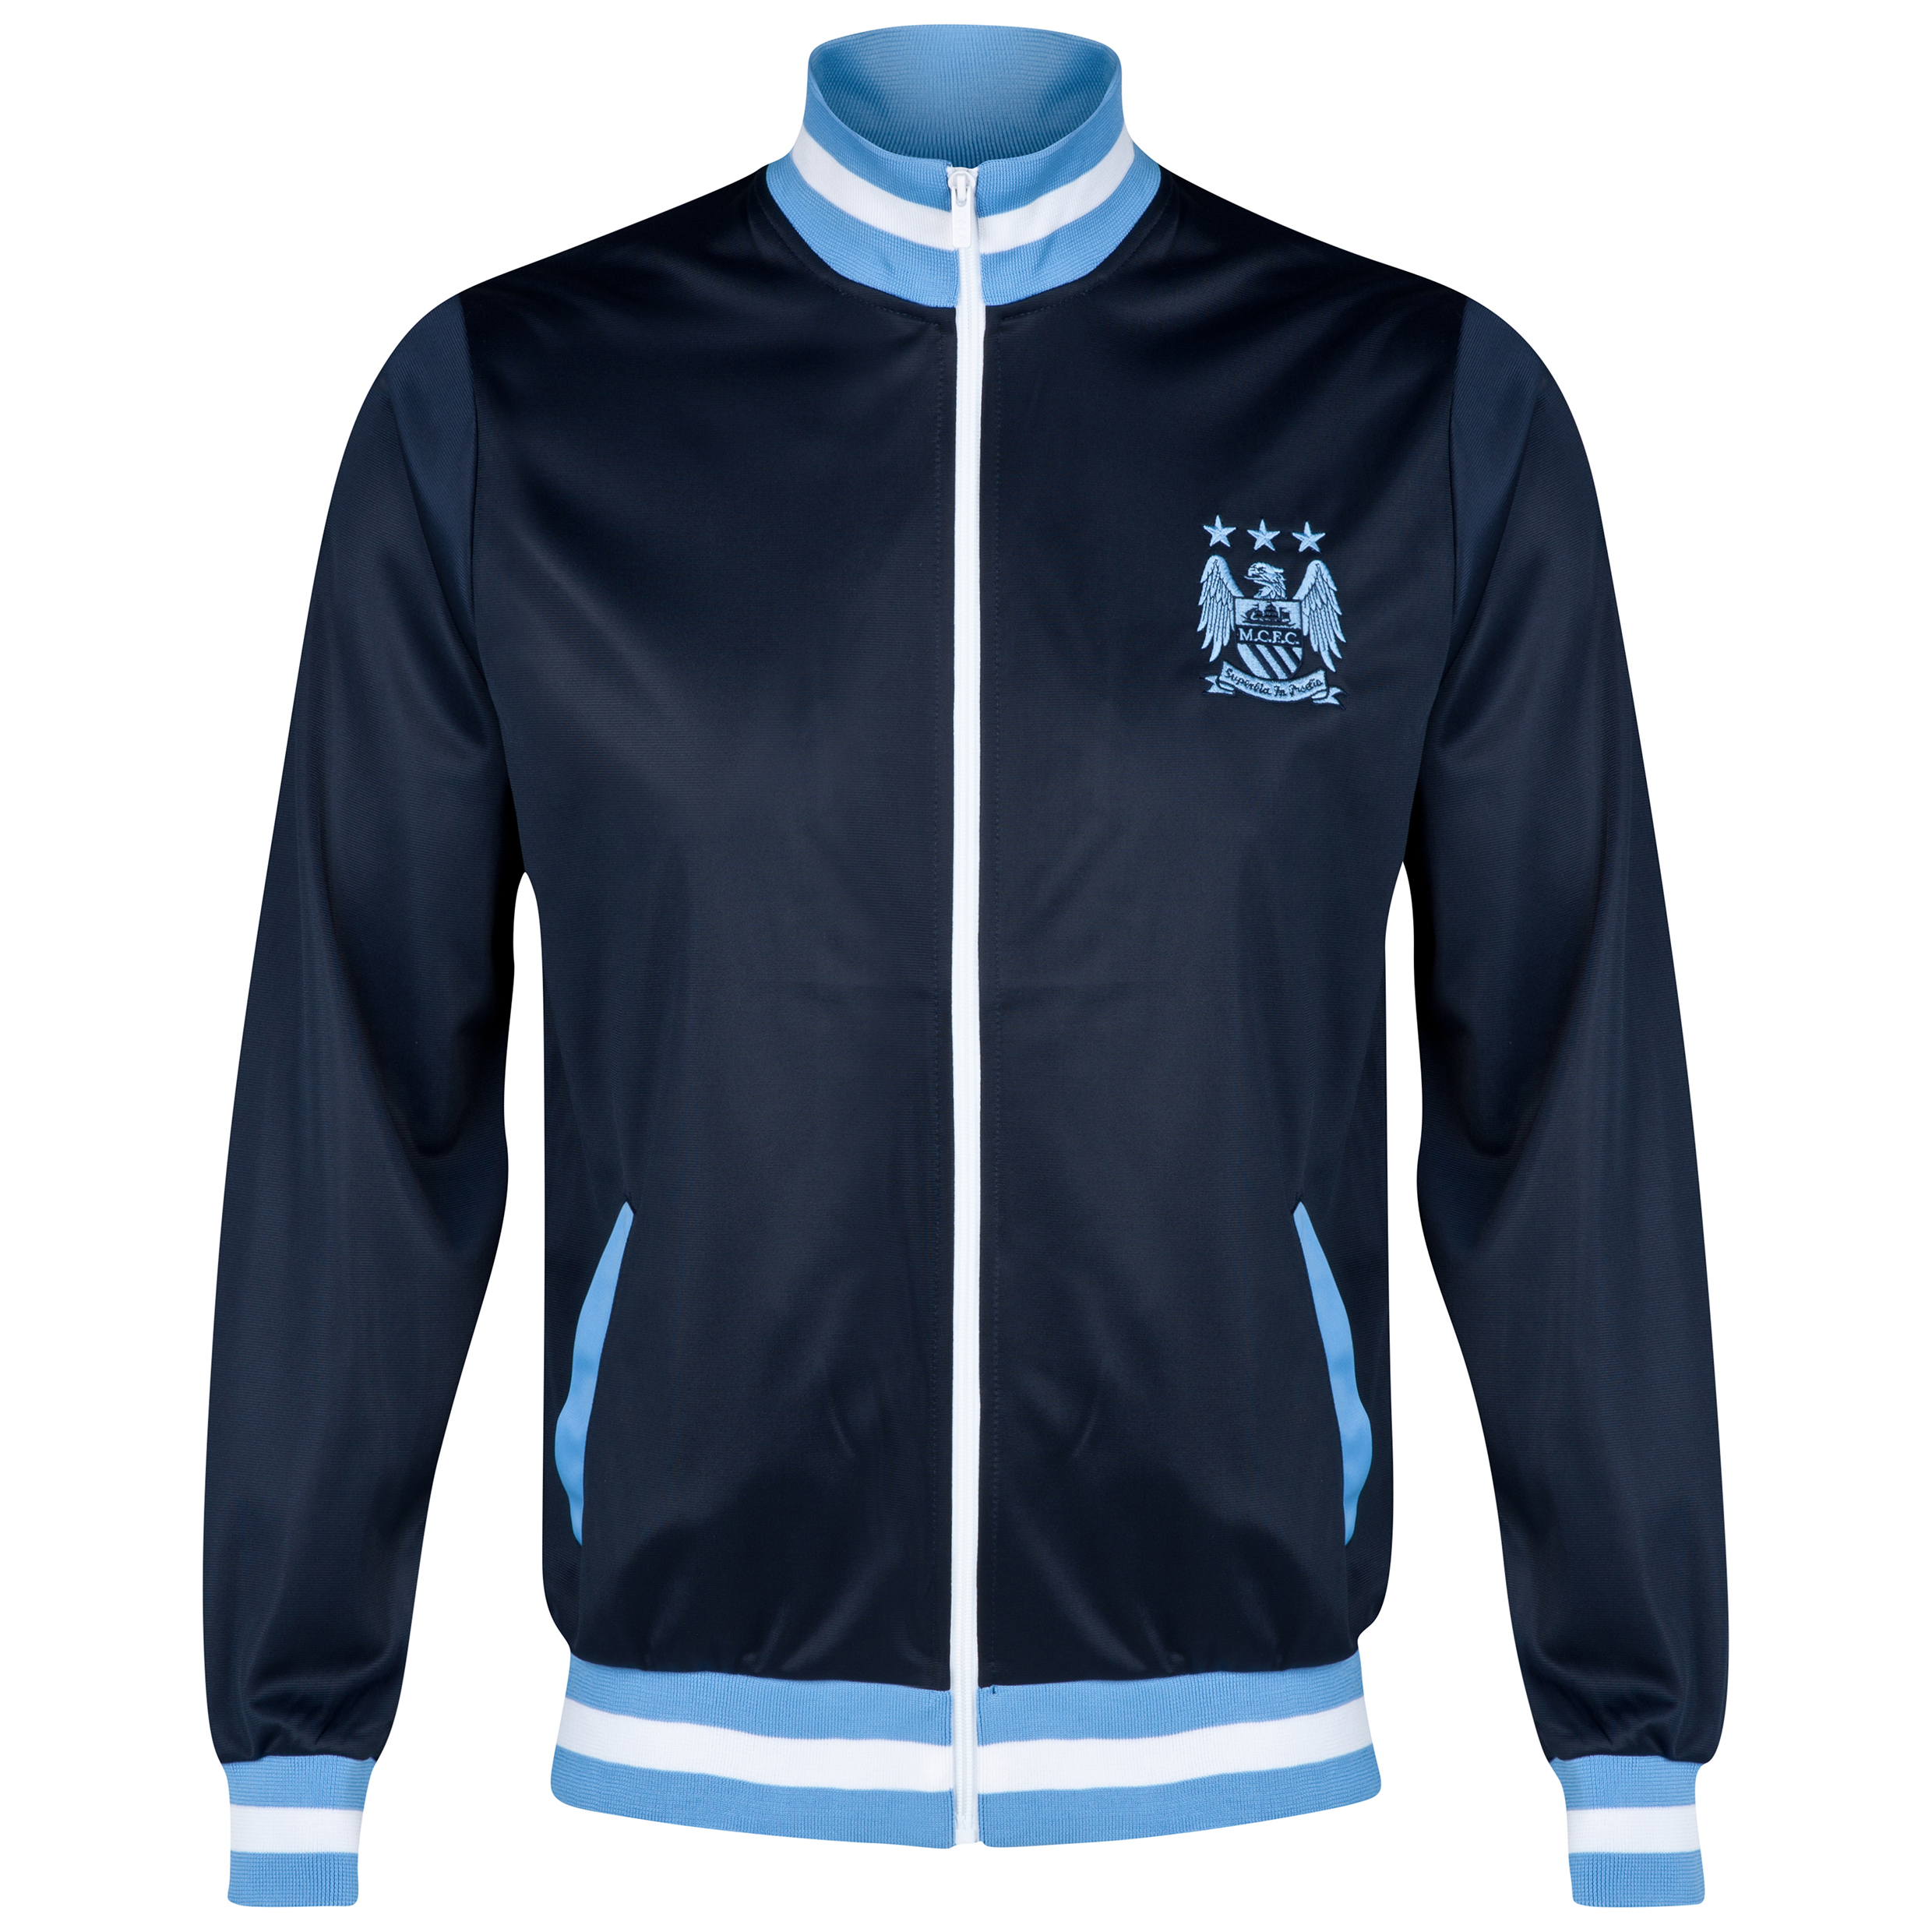 Manchester City Essential Track Jacket - Navy - Older Boys